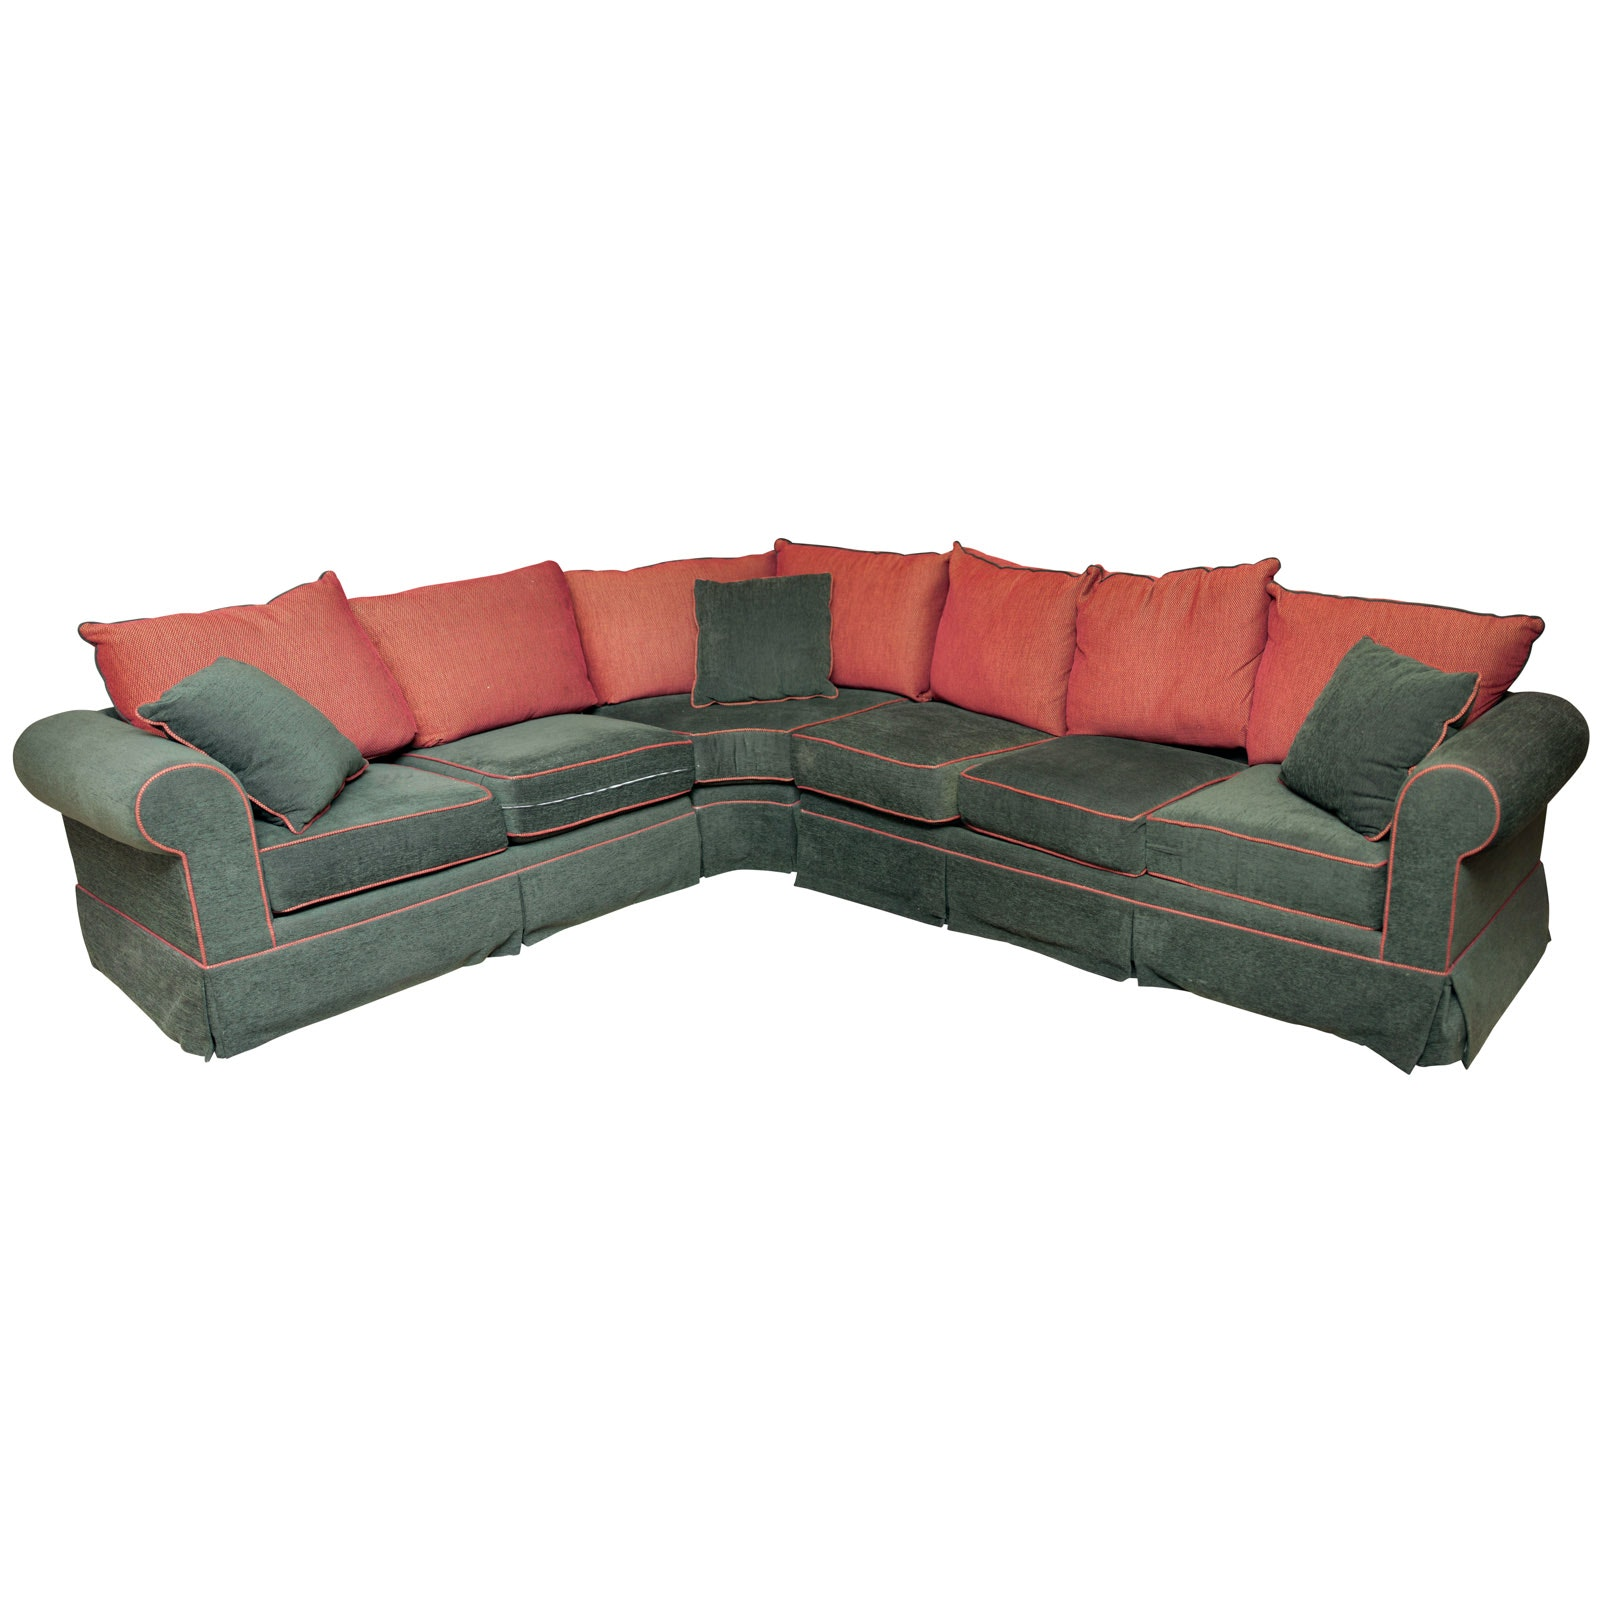 Contemporary Upholstered Sectional Sofa by Lane